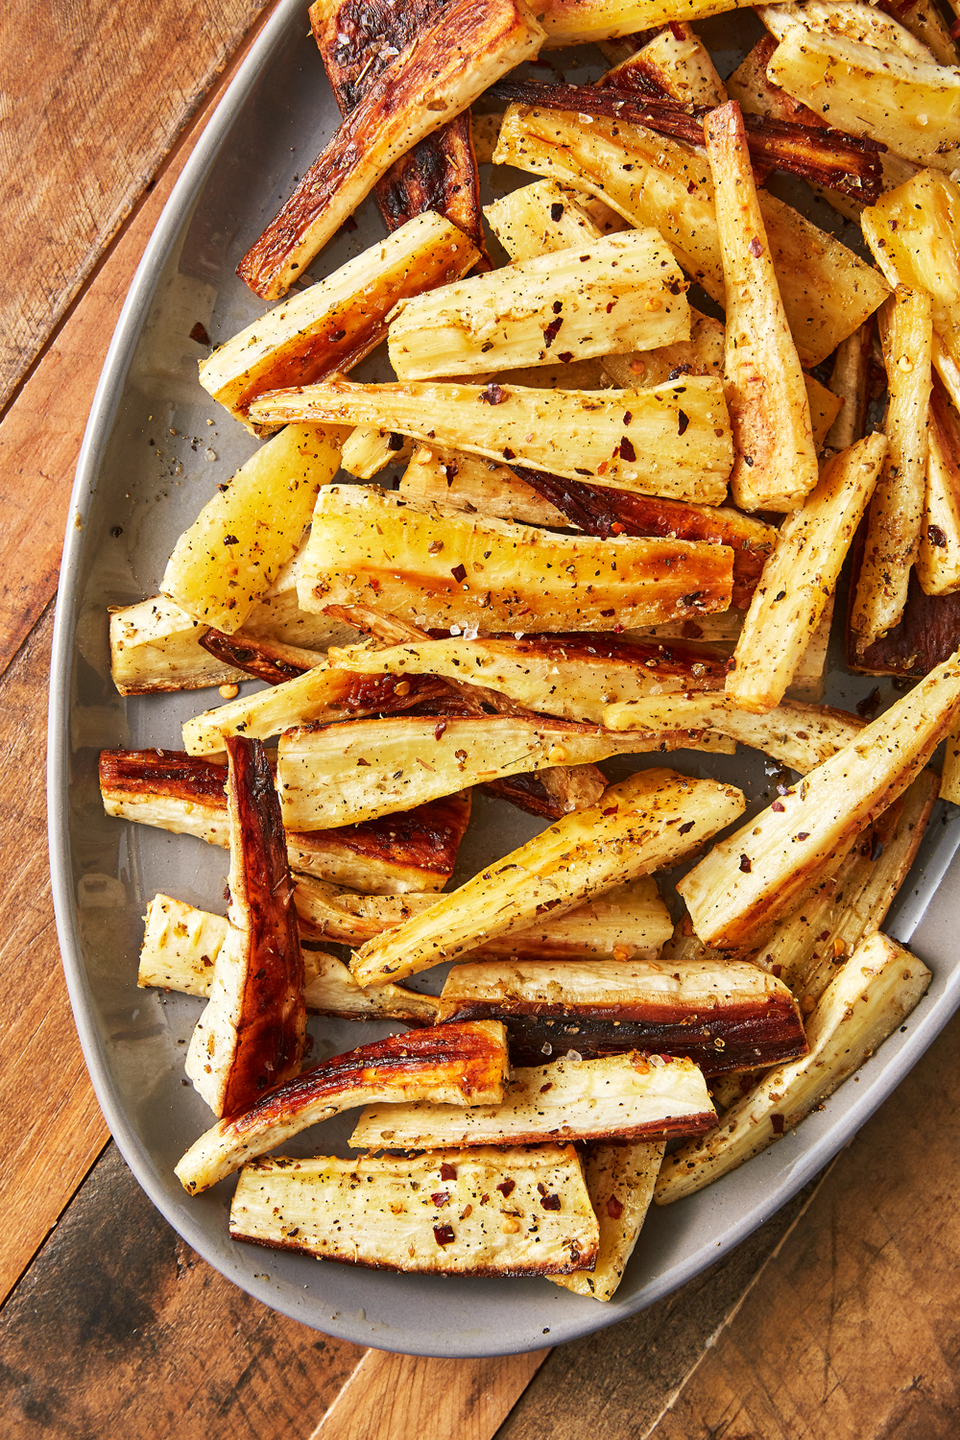 """<p>These don't get nearly the attention they deserve, but that ends now. </p><p>Get the recipe from <a href=""""https://www.delish.com/cooking/recipe-ideas/a26813128/roast-parsnips-recipe/"""" rel=""""nofollow noopener"""" target=""""_blank"""" data-ylk=""""slk:Delish"""" class=""""link rapid-noclick-resp"""">Delish</a>.</p>"""